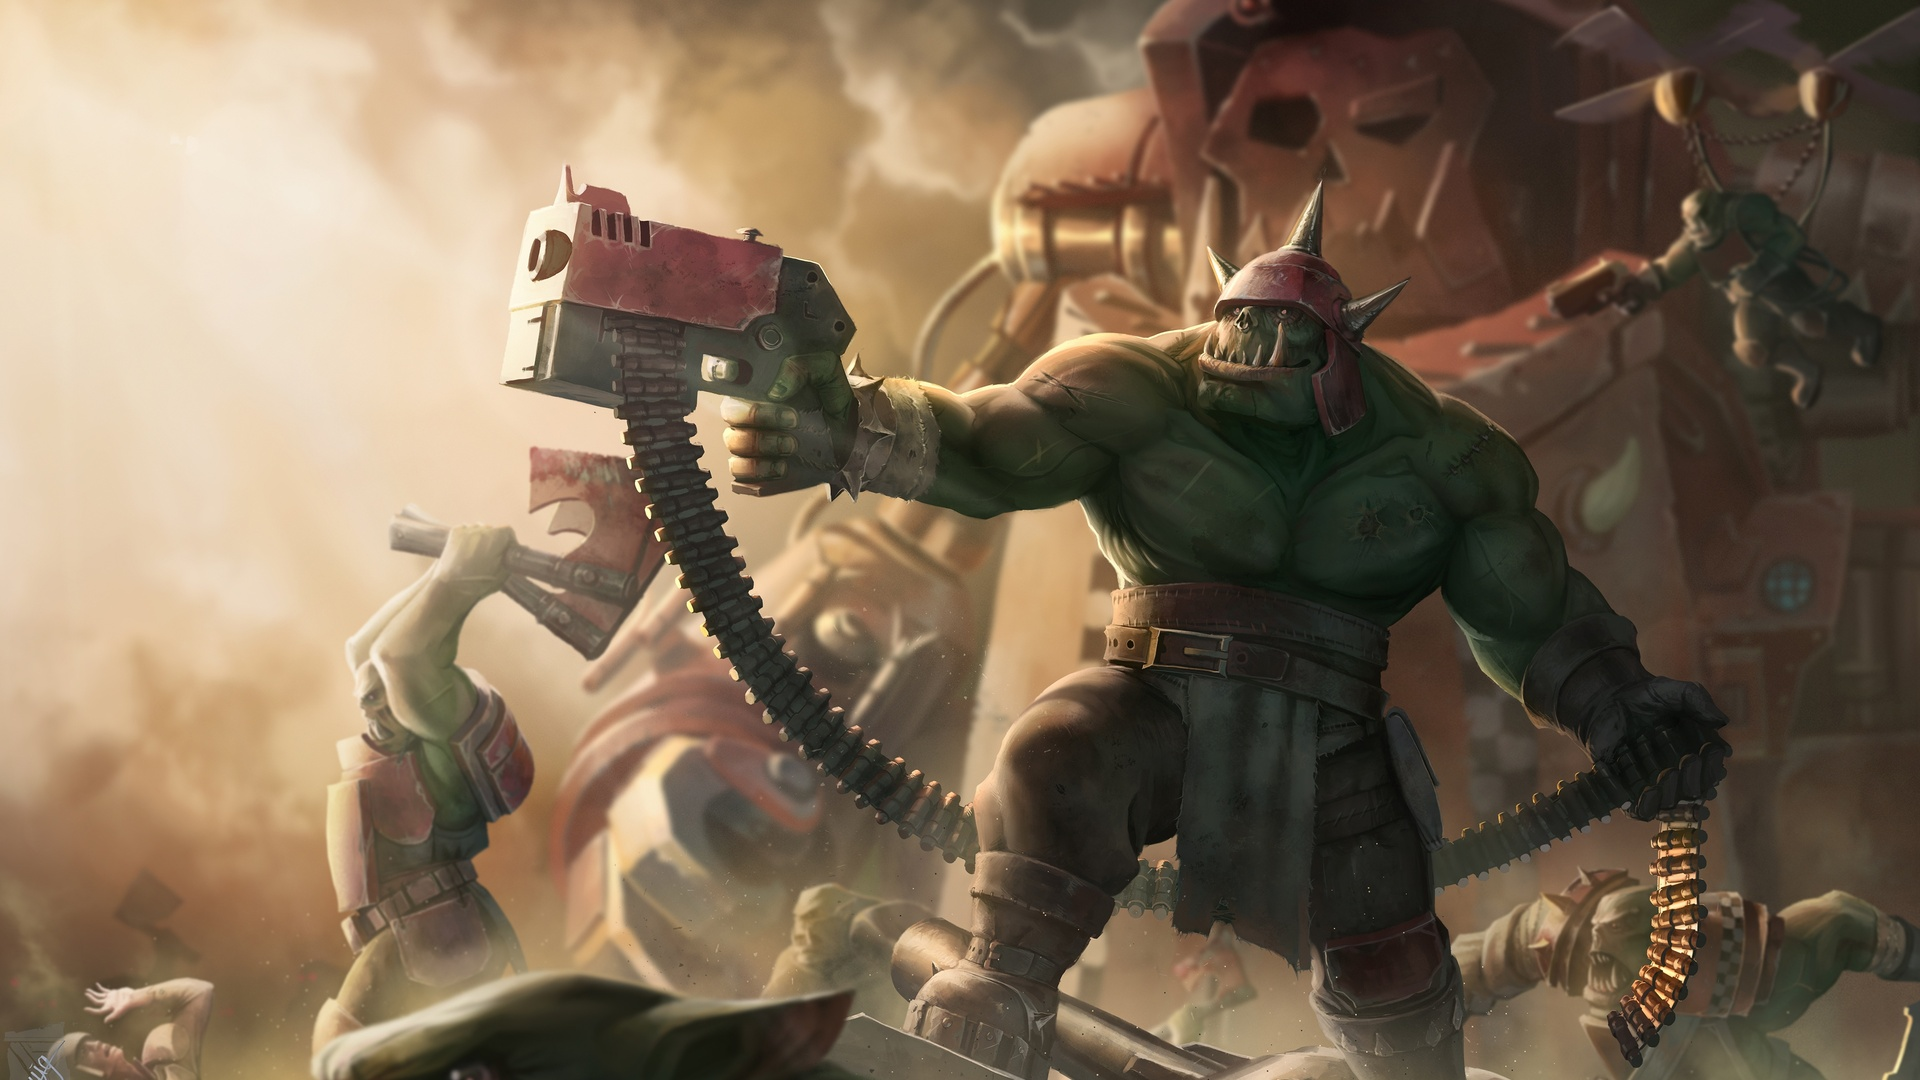 1920x1080 warhammer 40k ork laptop full hd 1080p hd 4k wallpapers